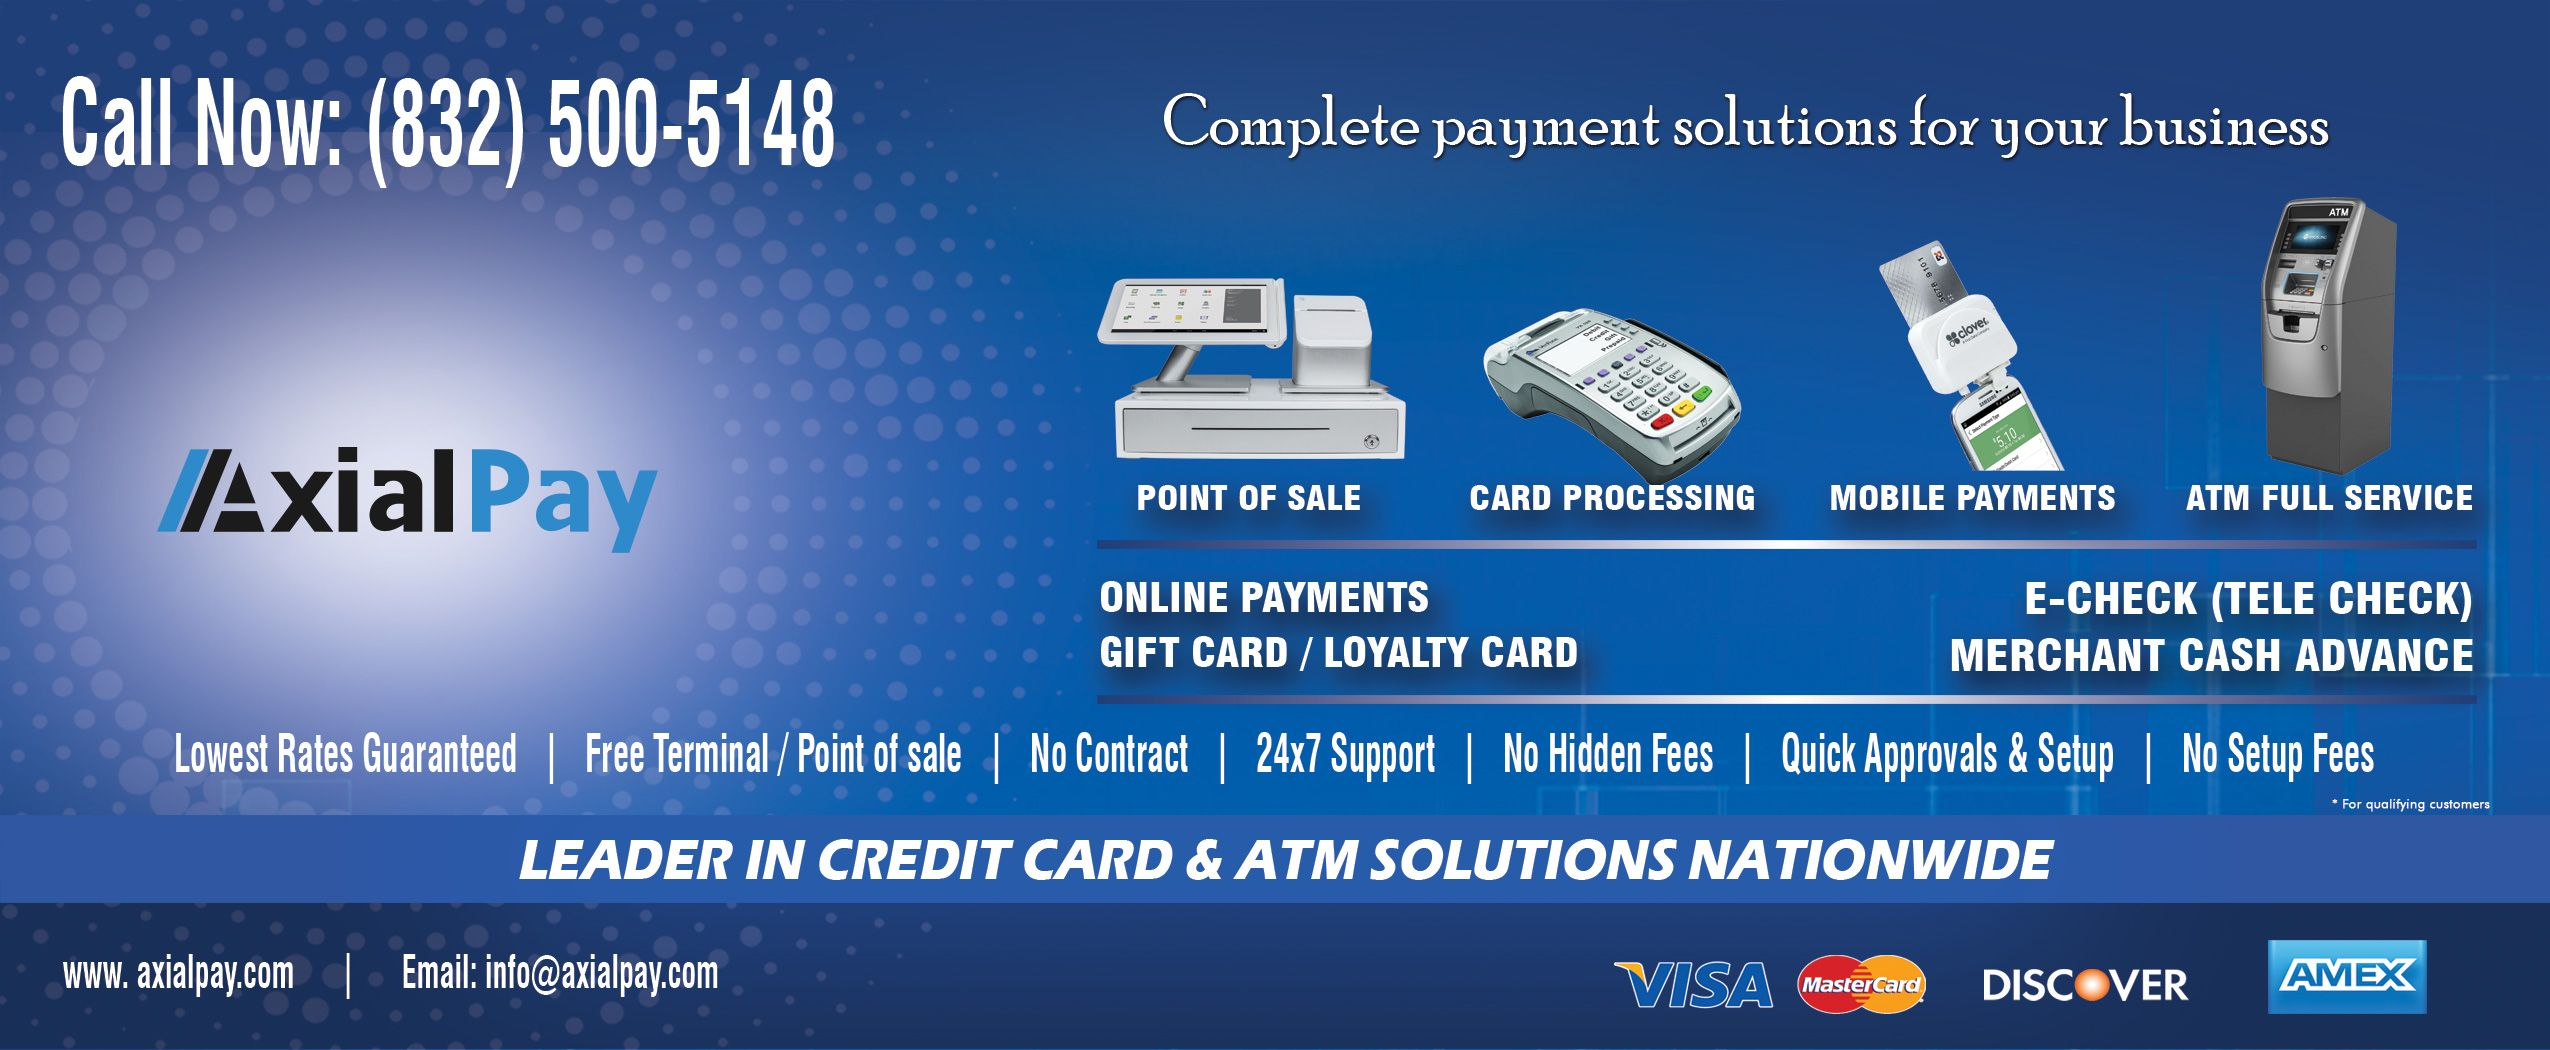 United Credit Card Customer Service Axialpay Offers Payment And Merchant Services For Merchants